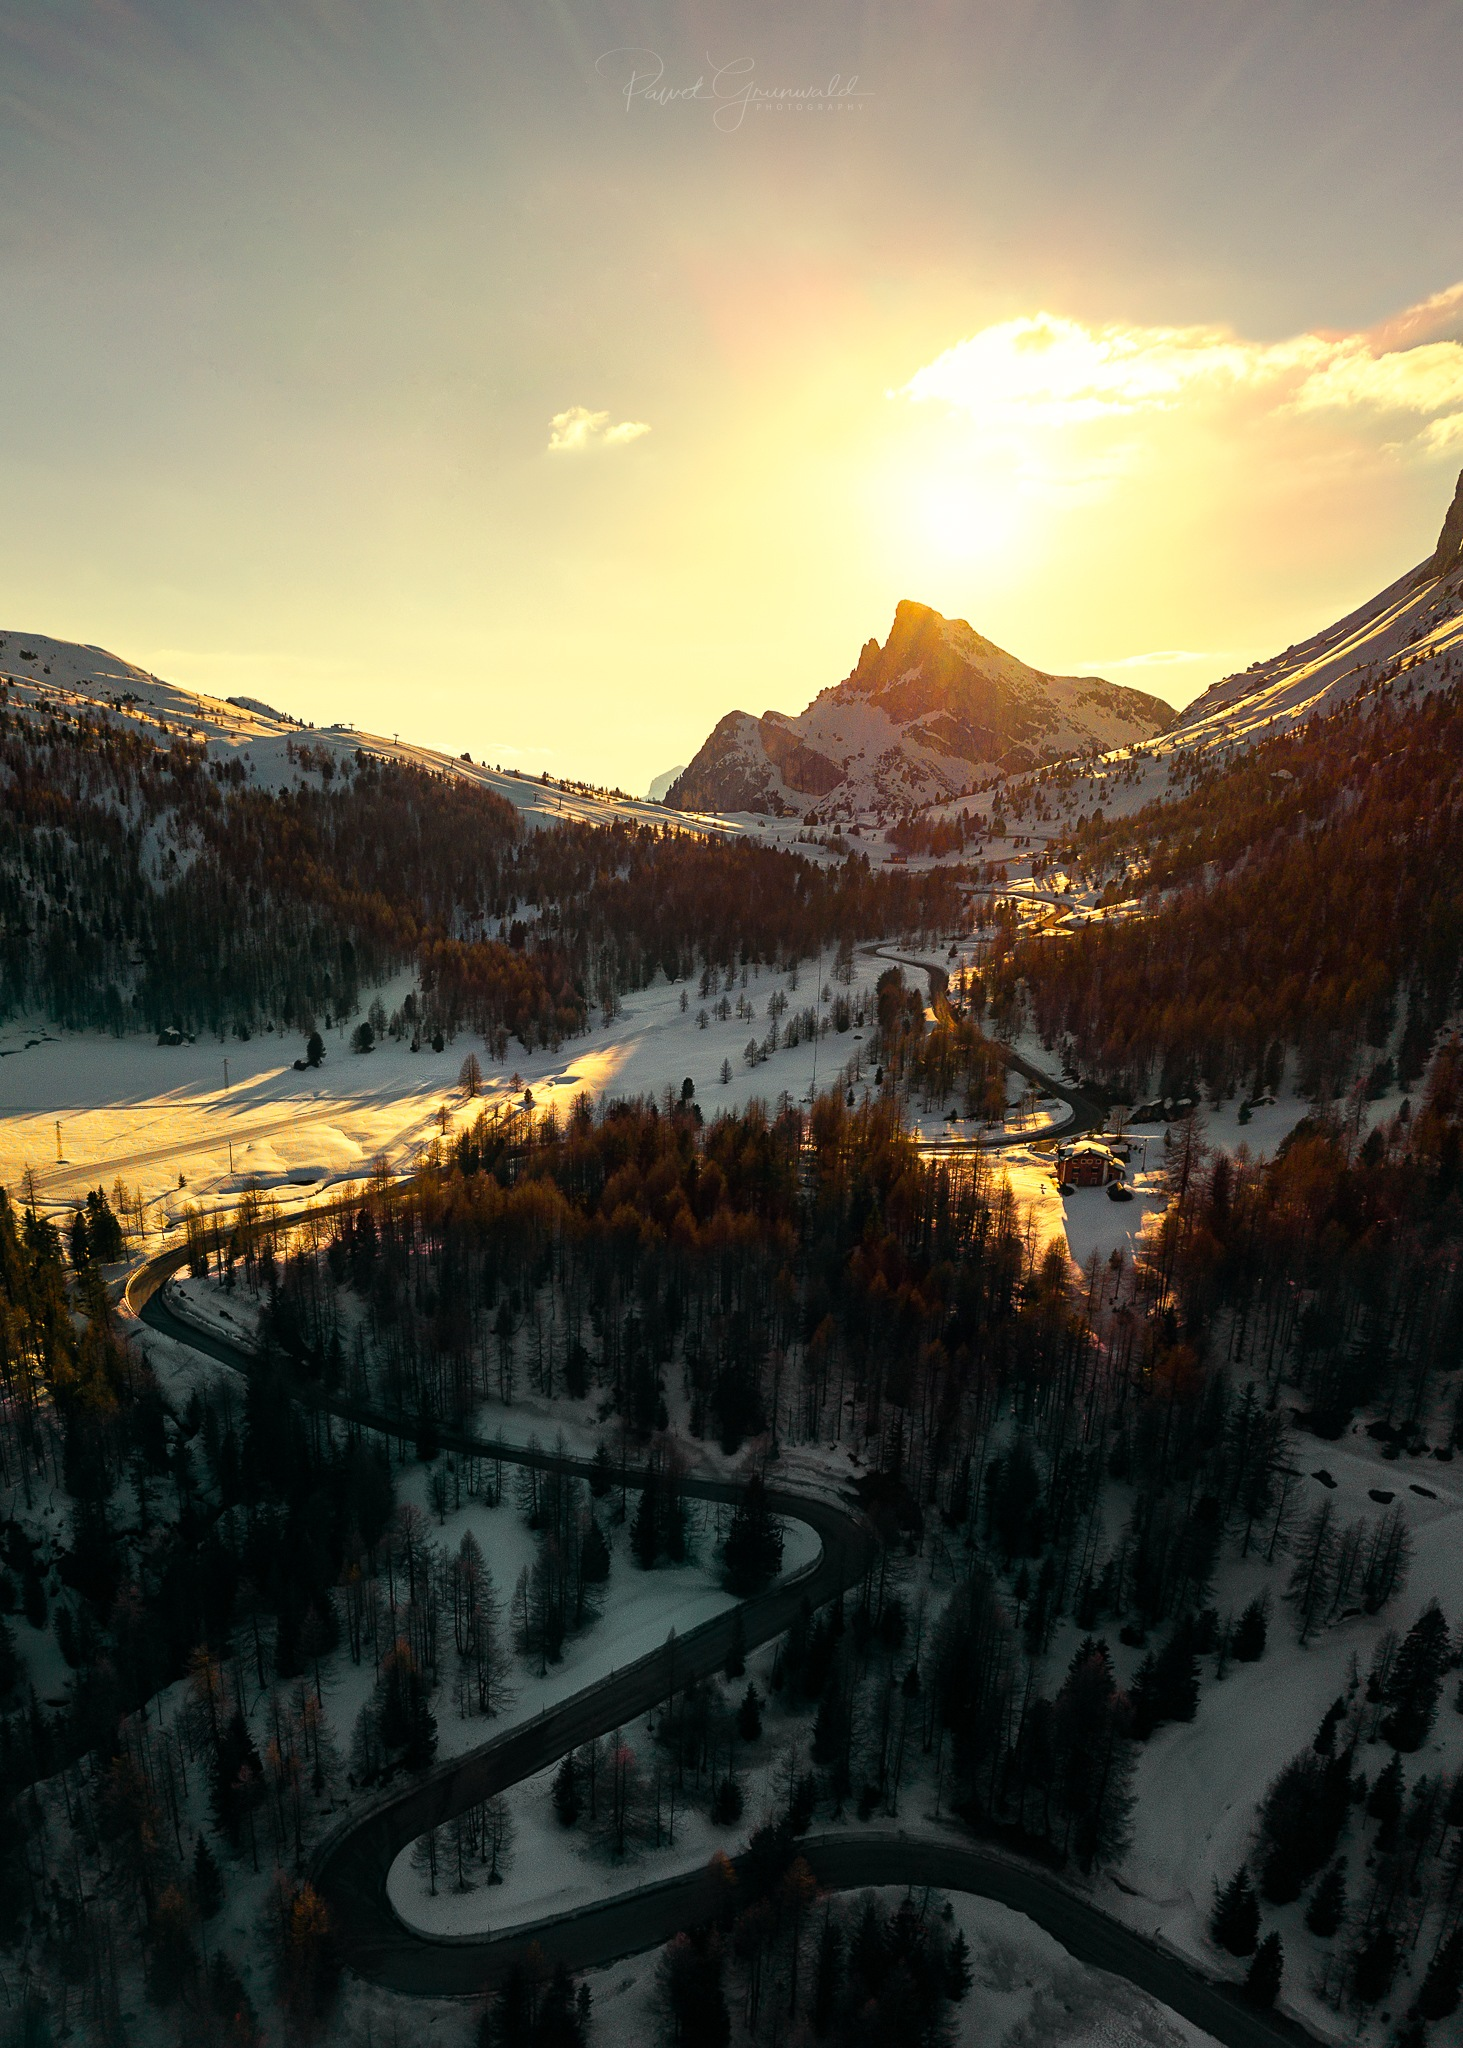 """""""Up in mountains"""" by PawelGrunwald"""